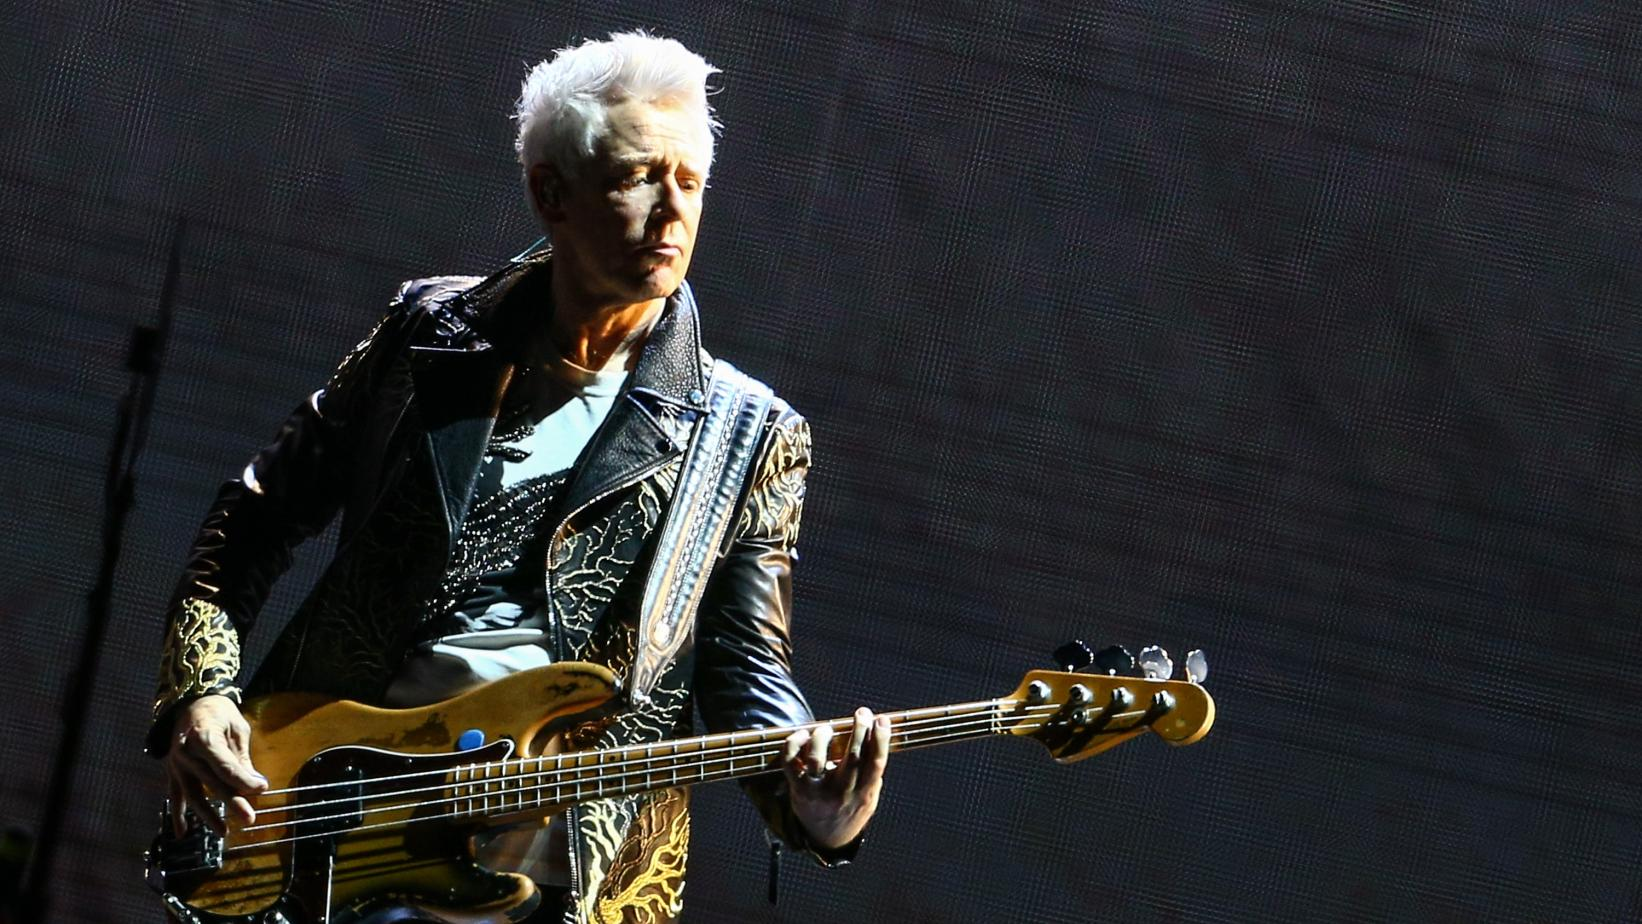 Adam Clayton performs live at the Rose Bowl in 2017